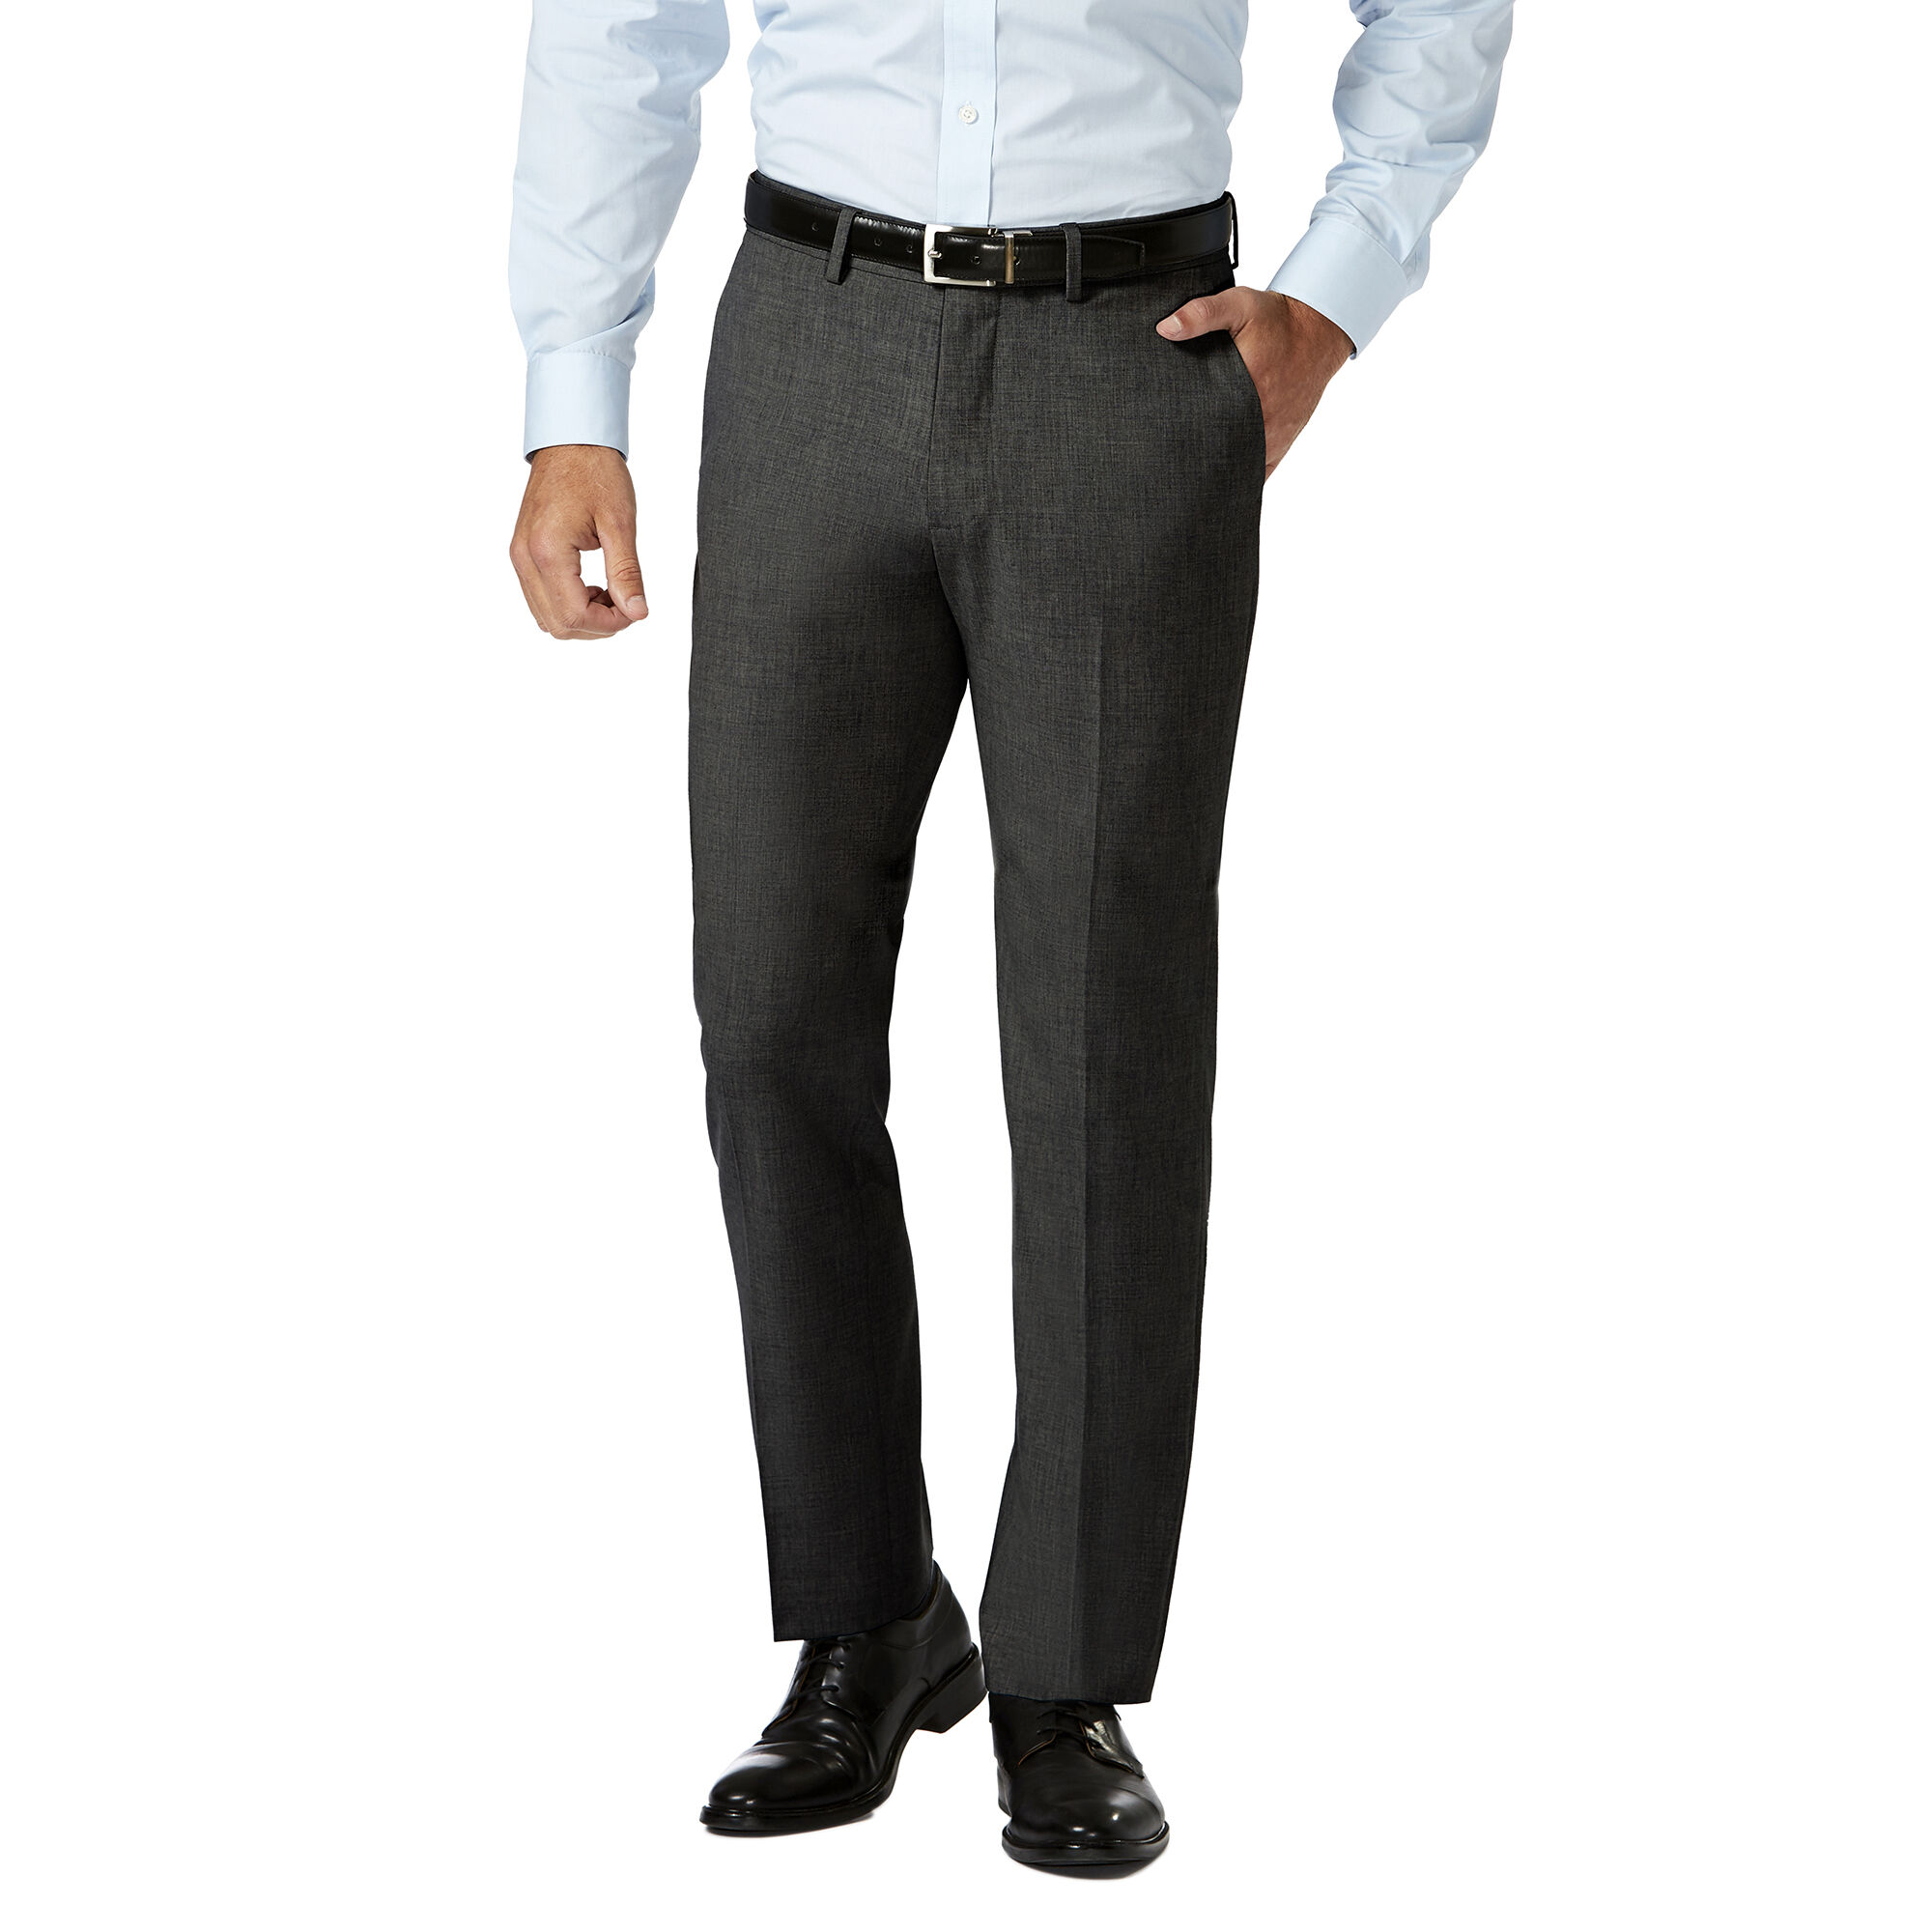 Haggar® Premium Stretch Slim Fit Suit Pants With Credit Card Free Shipping Free Shipping Eastbay Outlet With Paypal Order uTZgJiSh